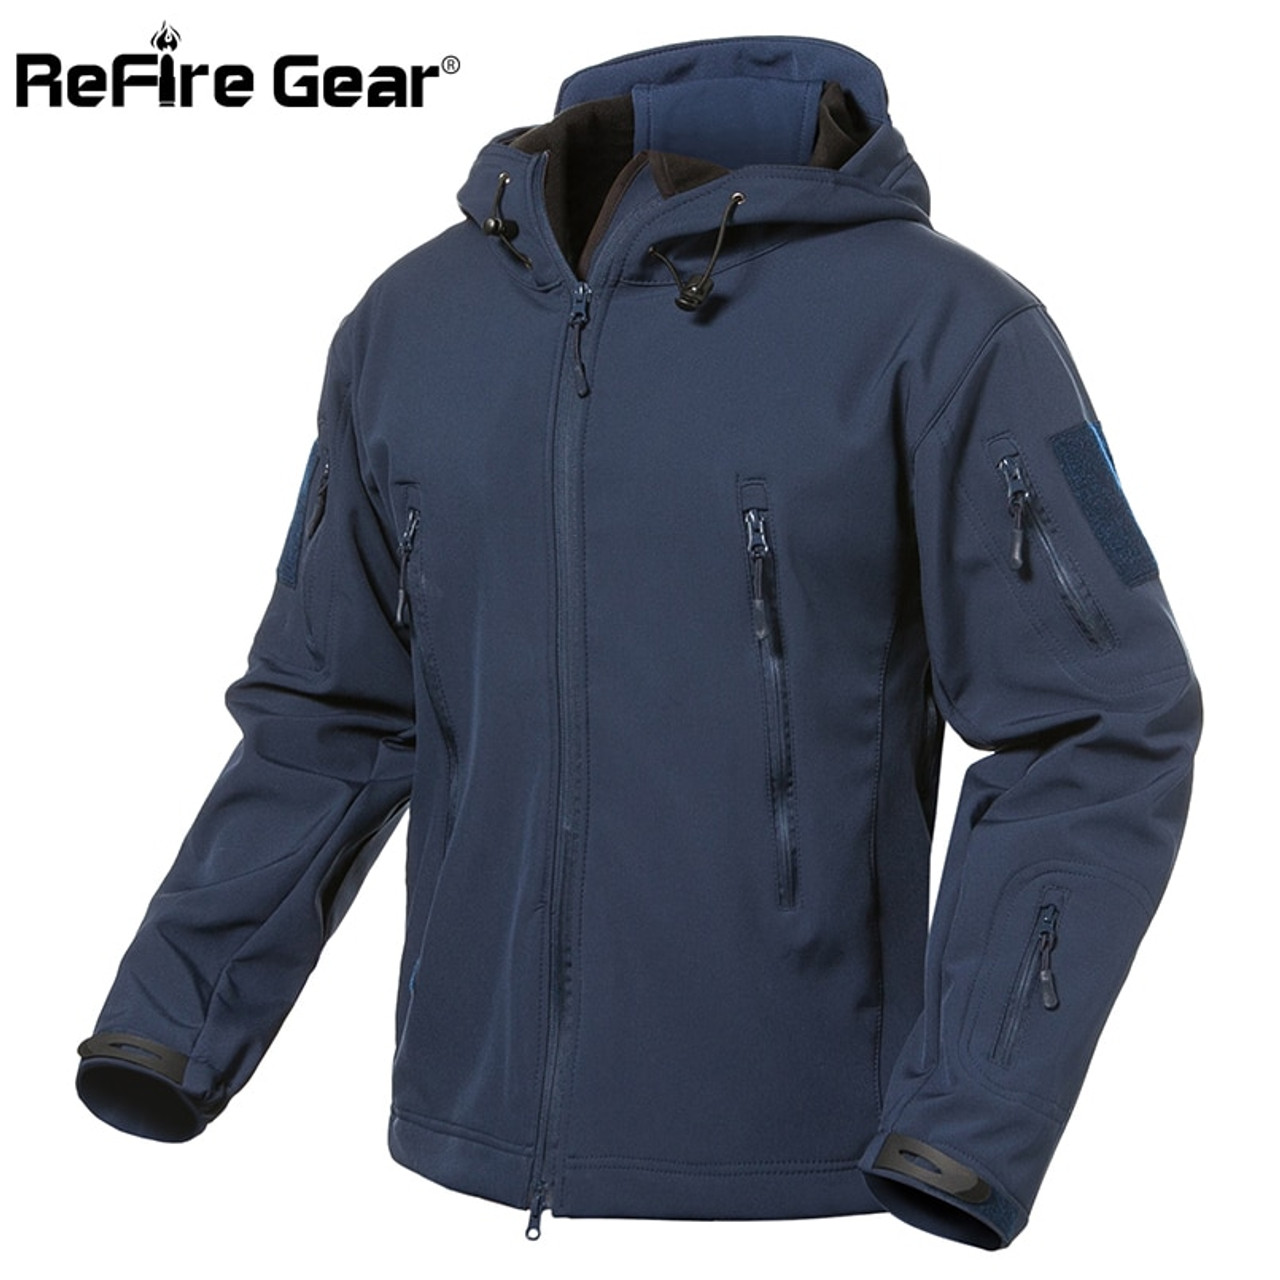 ace3df508 ReFire Gear Navy Blue Soft Shell Military Jacket Men Waterproof Army  Tactical Jacket Coat Winter Warm ...